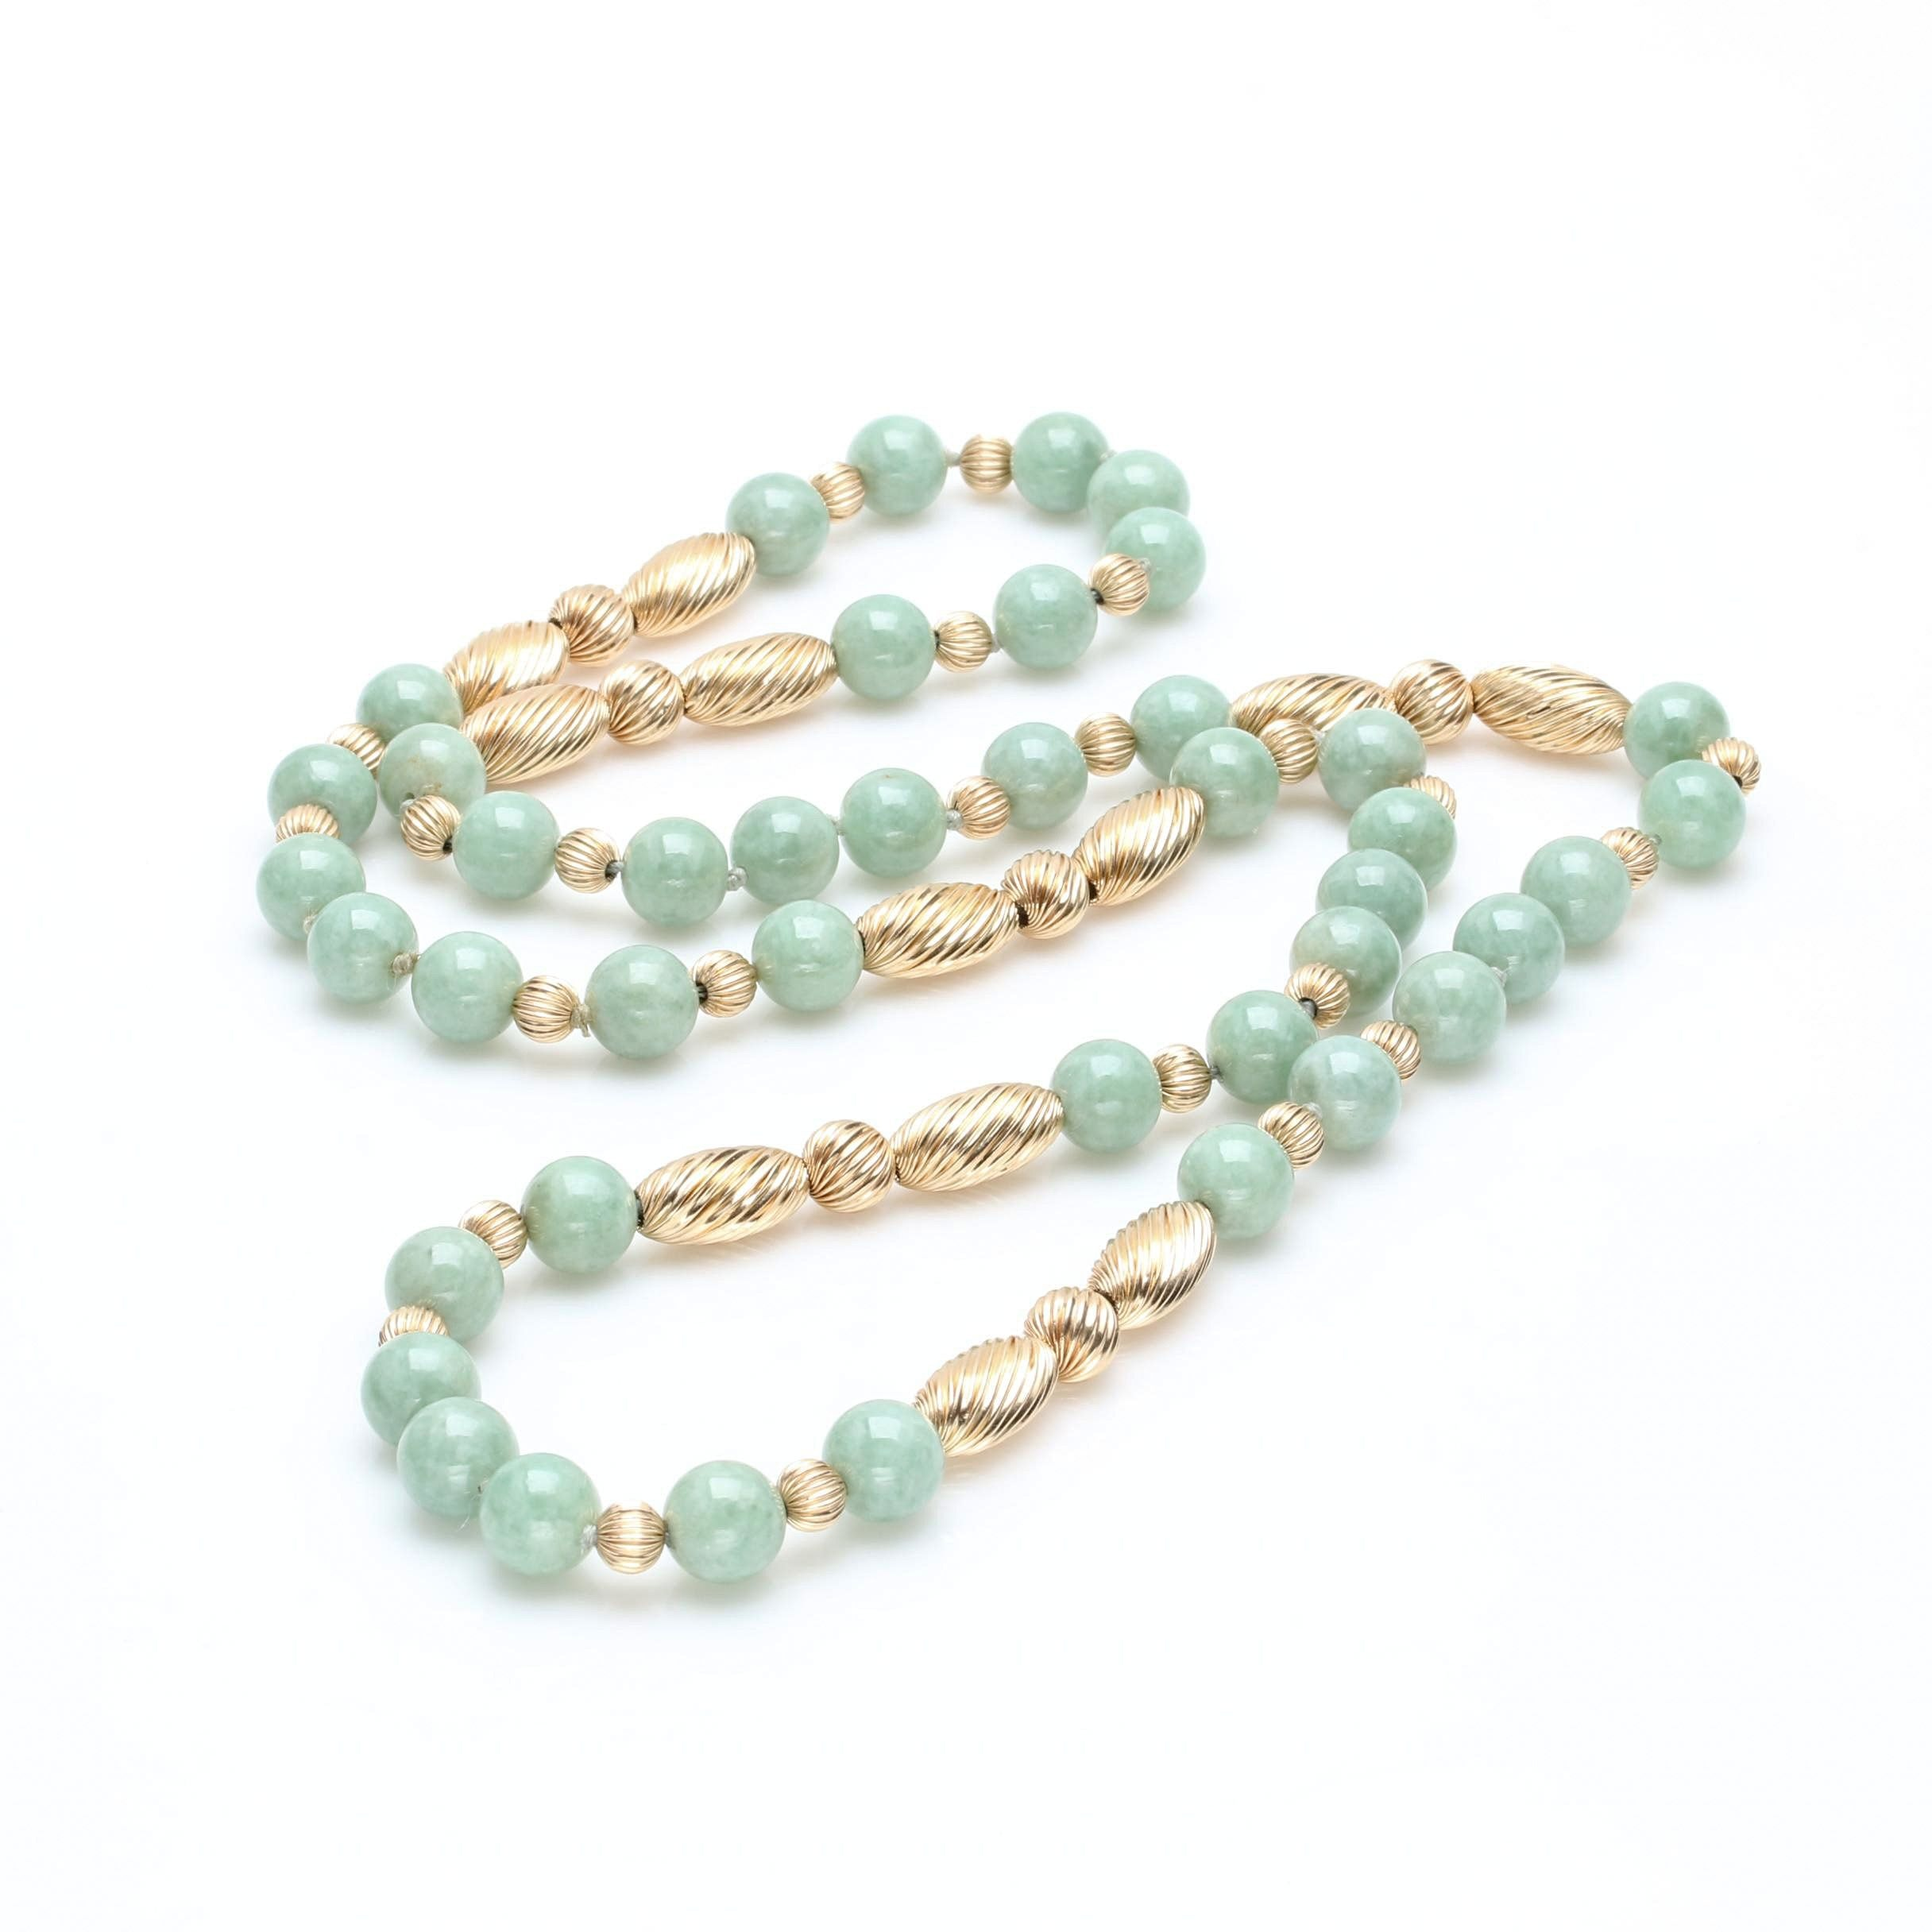 14K Yellow Gold Nephrite Beaded Necklace